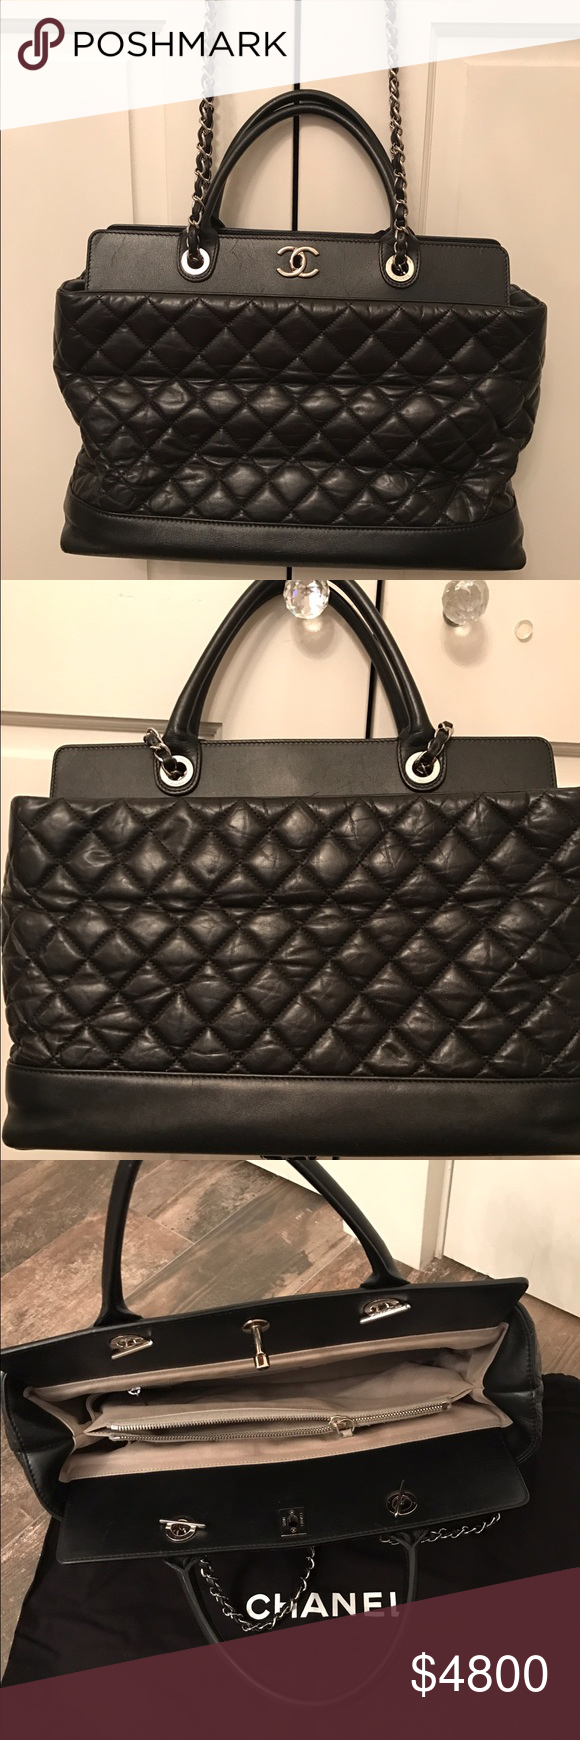 Gorgeous CHANEL bag The bag is a little used since it is old but still in  great condition! Comes with bag as well. Used with tag CHANEL Bags 3e9be8a0a6612